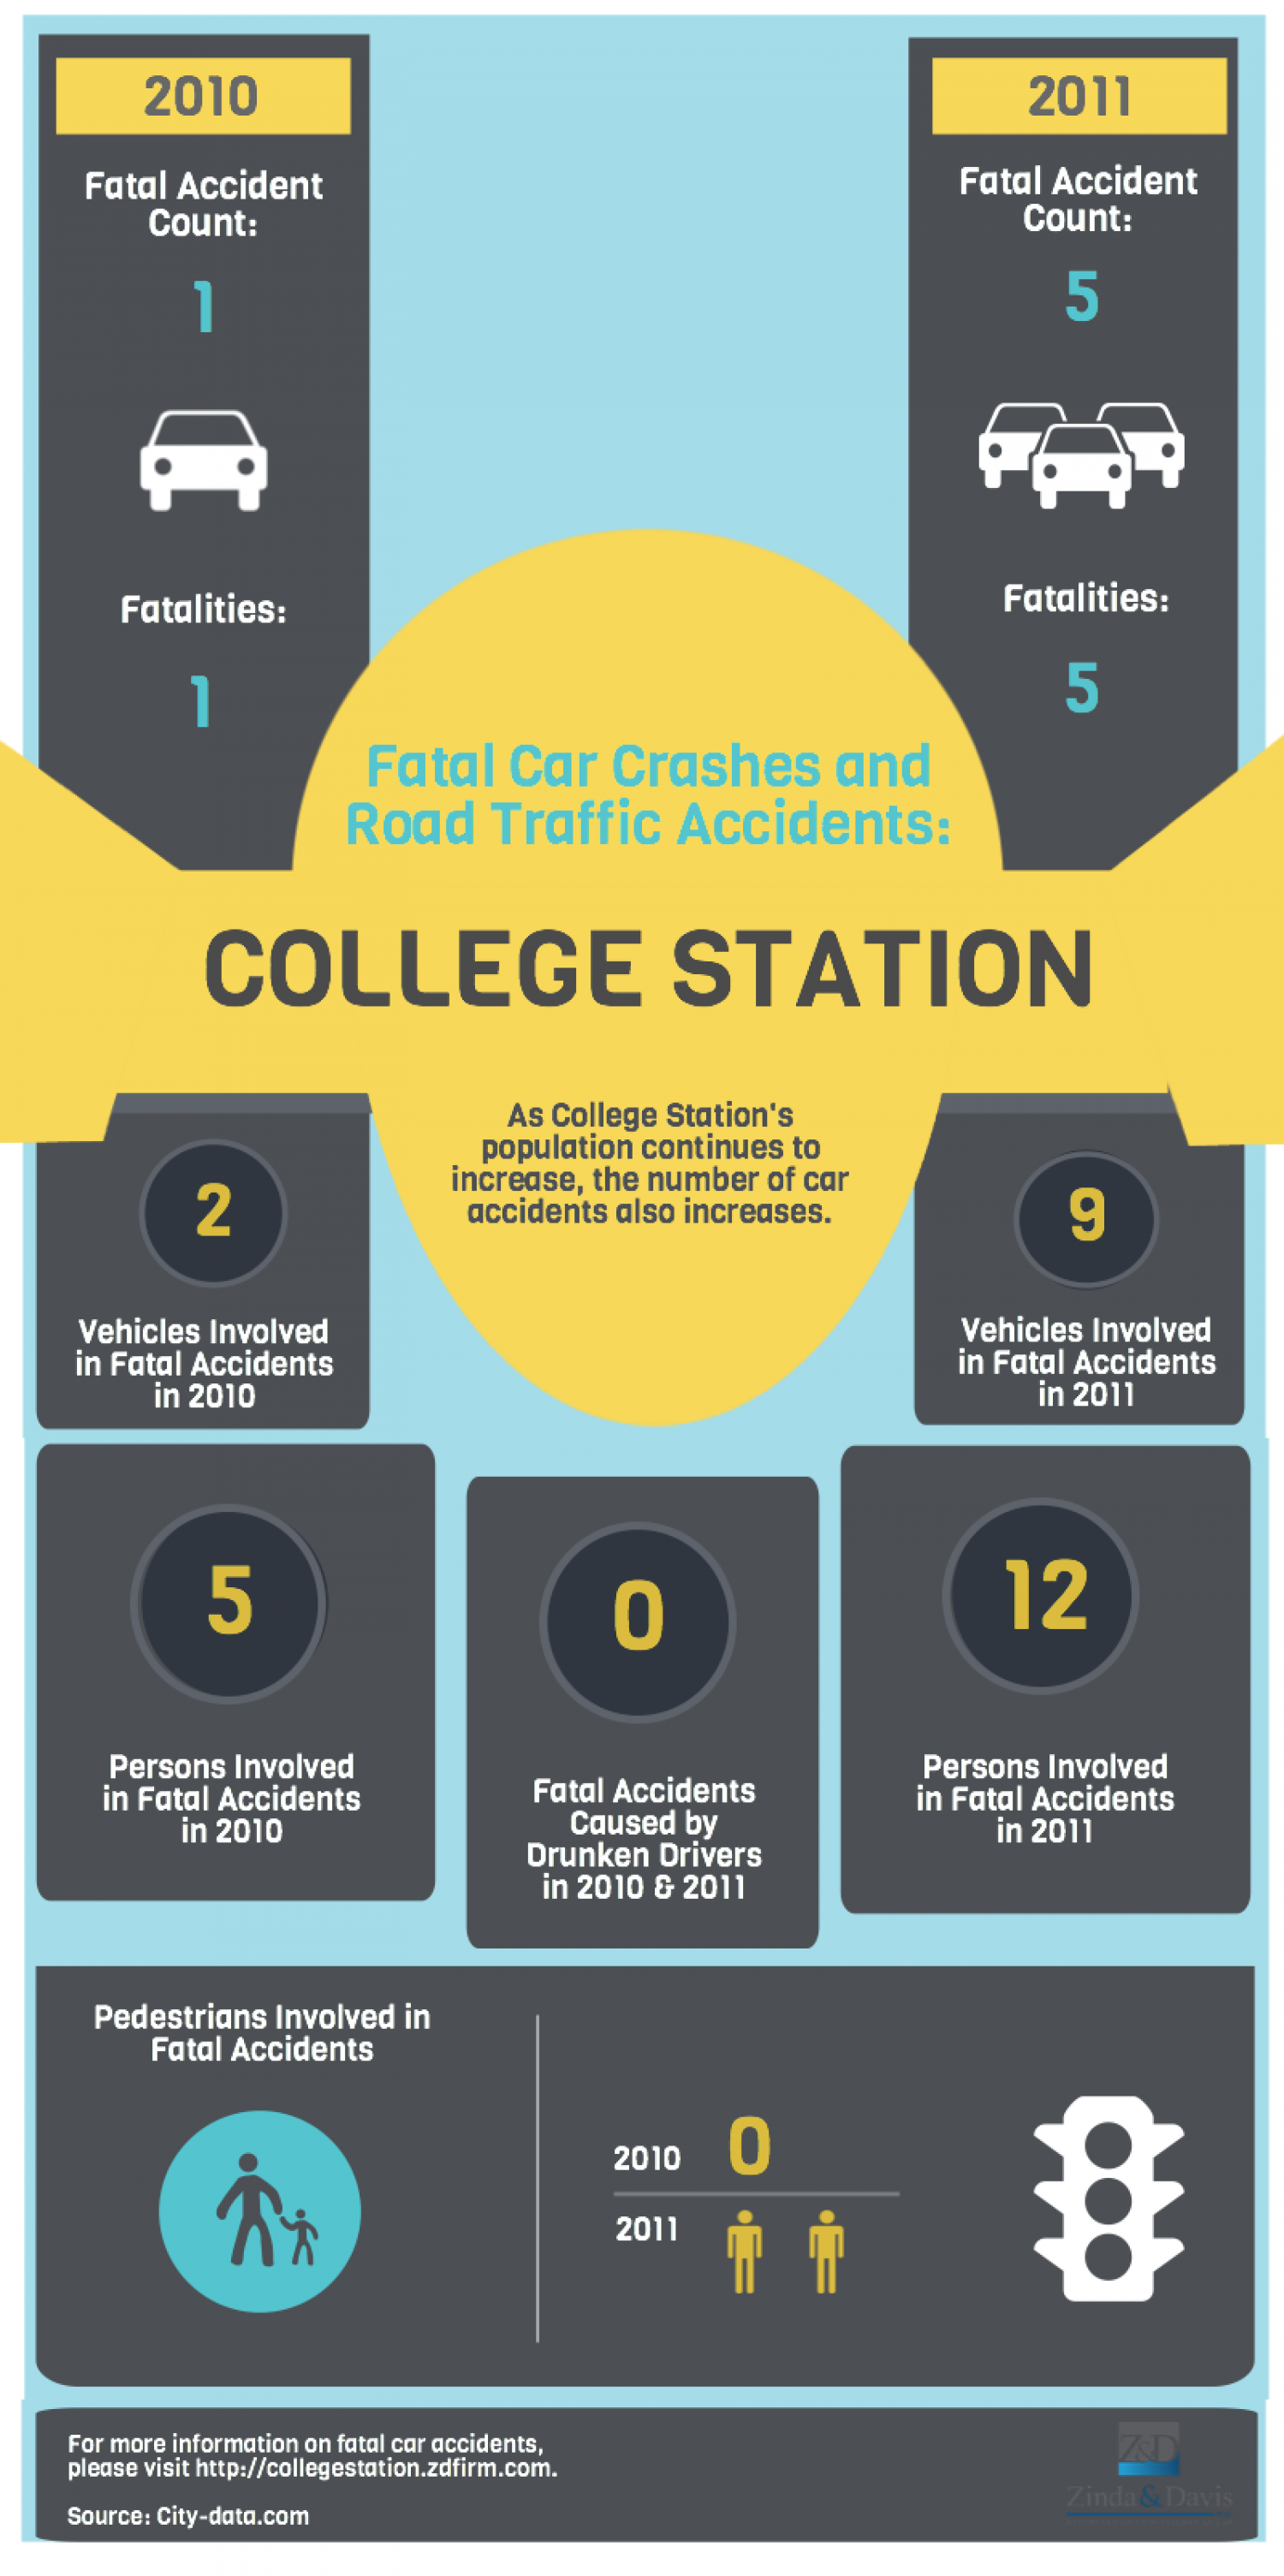 Fatal Car Crashes and Road Traffic Accidents: College Station Infographic